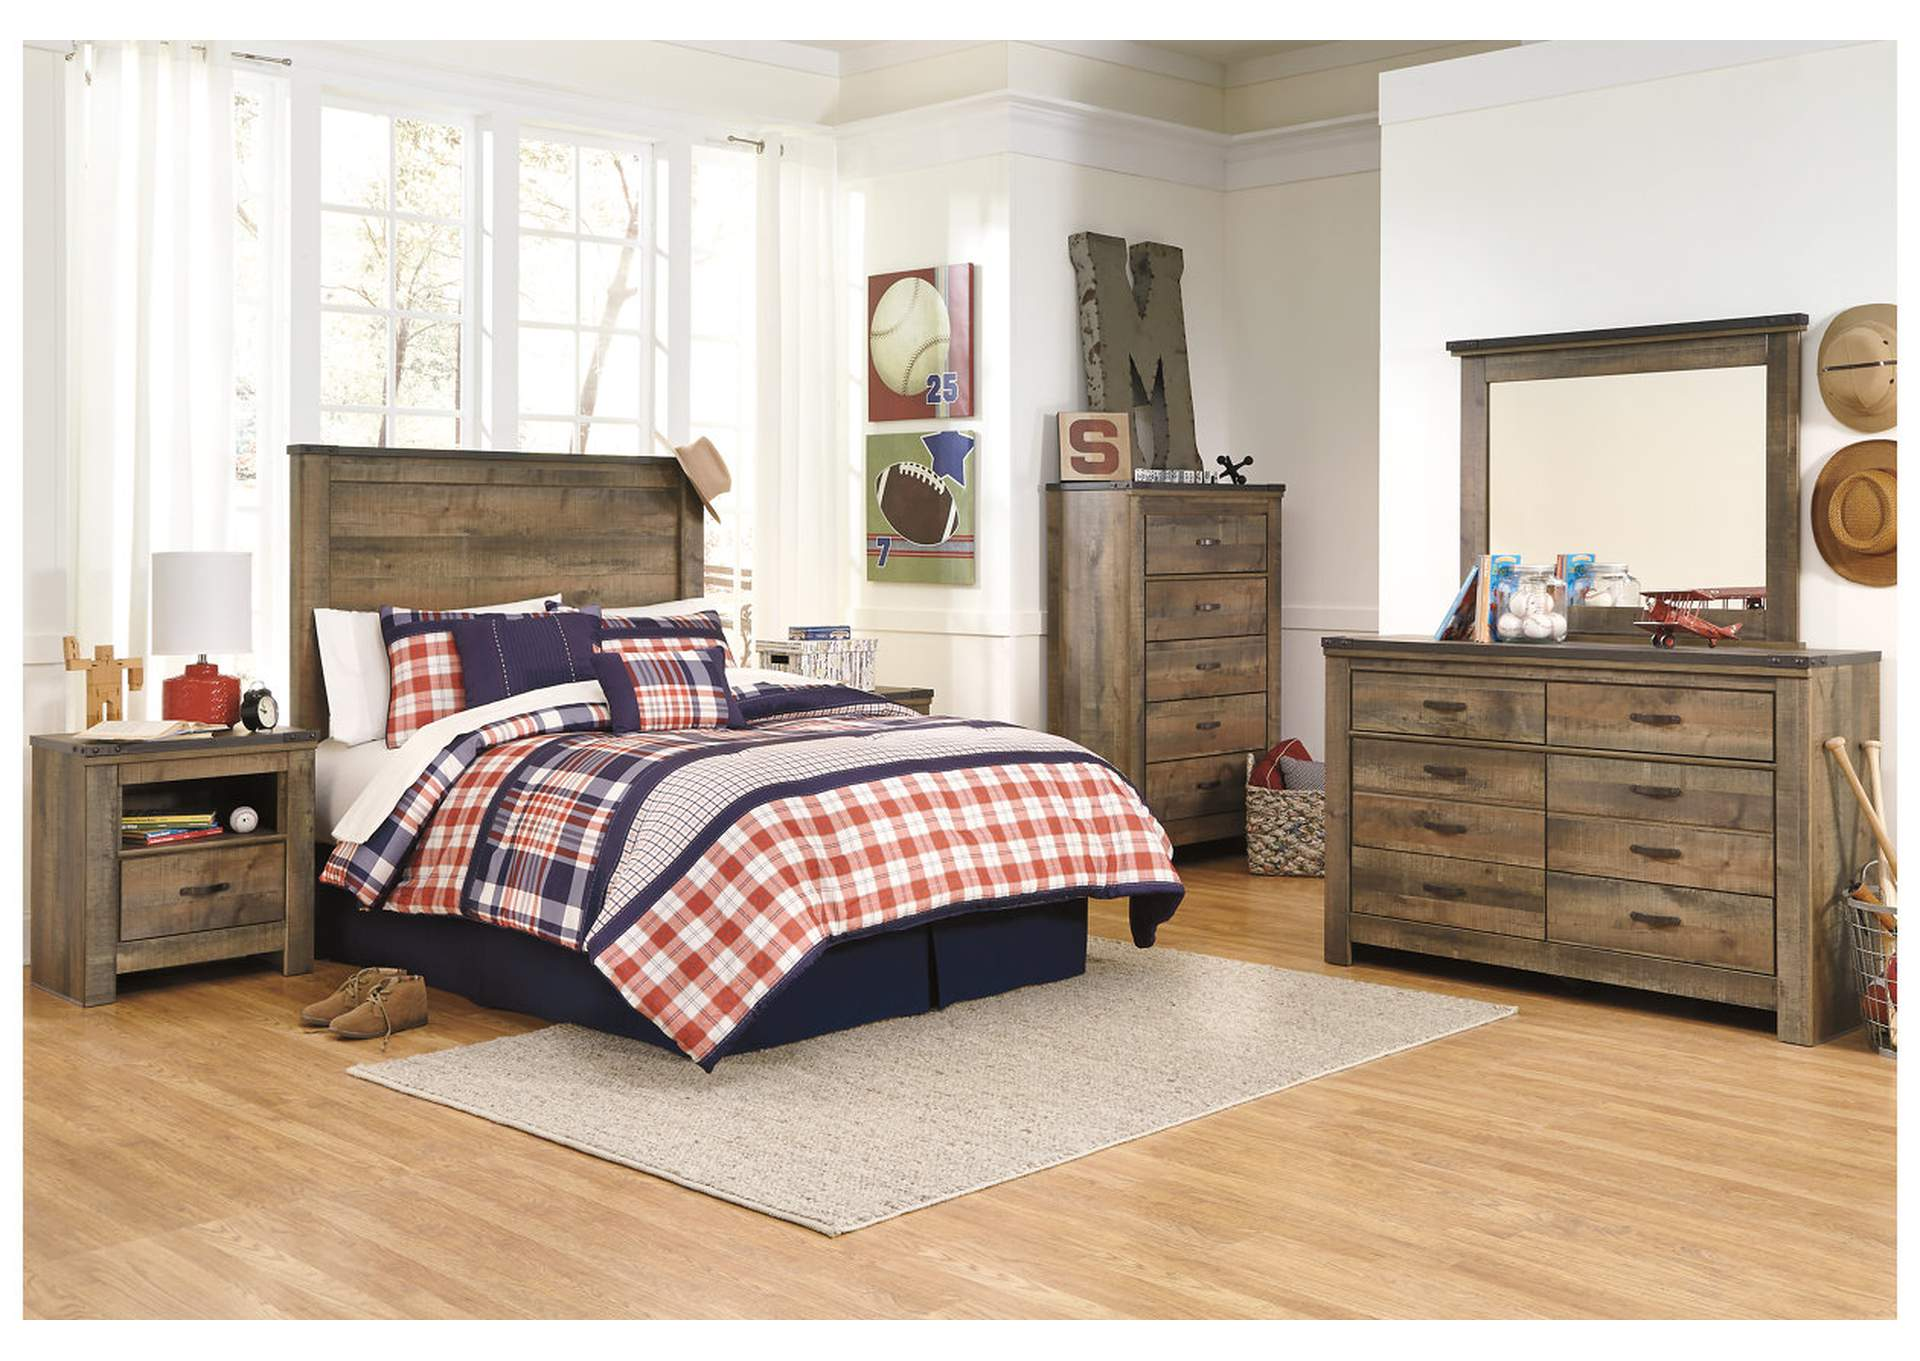 Trinell Brown Full Panel Headboard w/Dresser, Mirror, Drawer Chest & Nightstand,Signature Design By Ashley